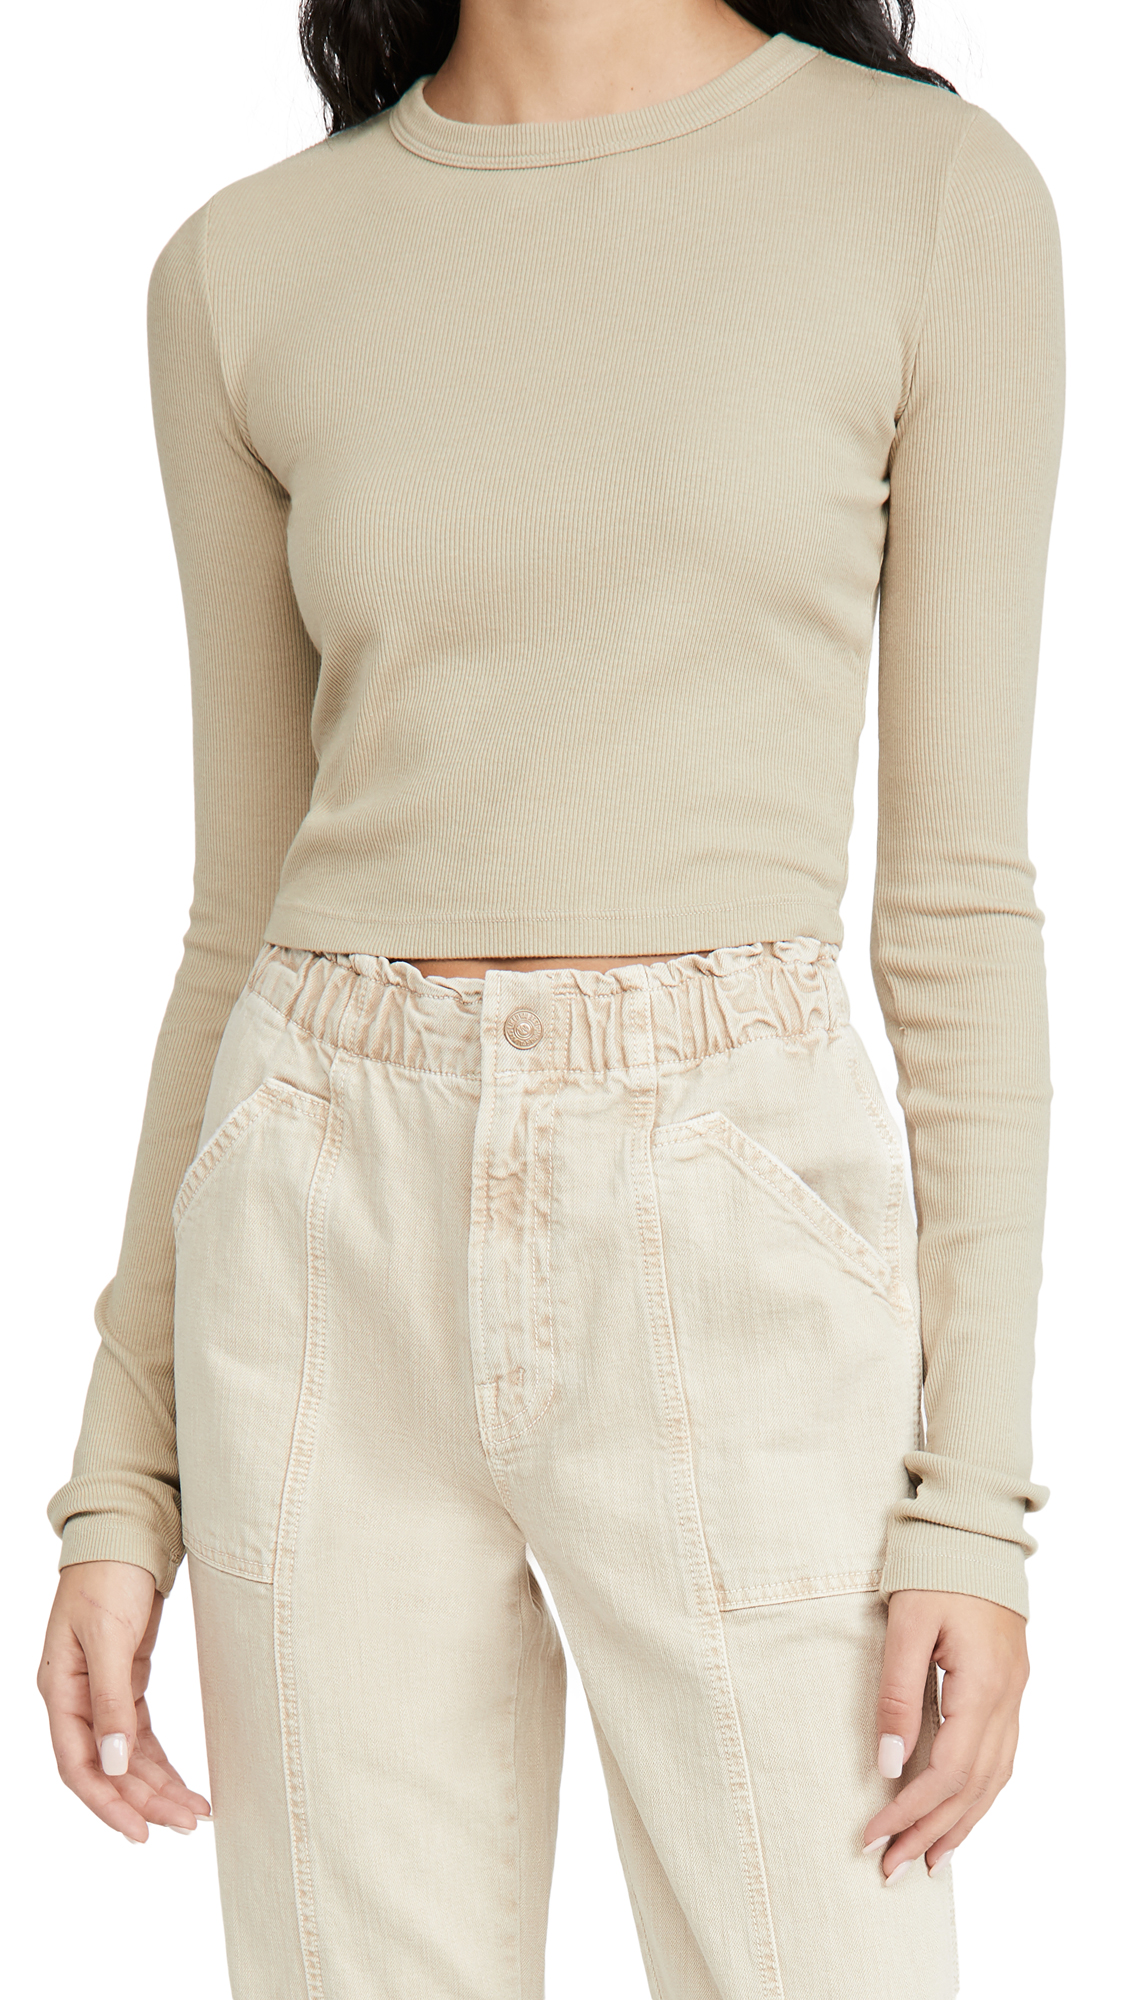 Cotton Citizen VERONA CROPPED SHIRT